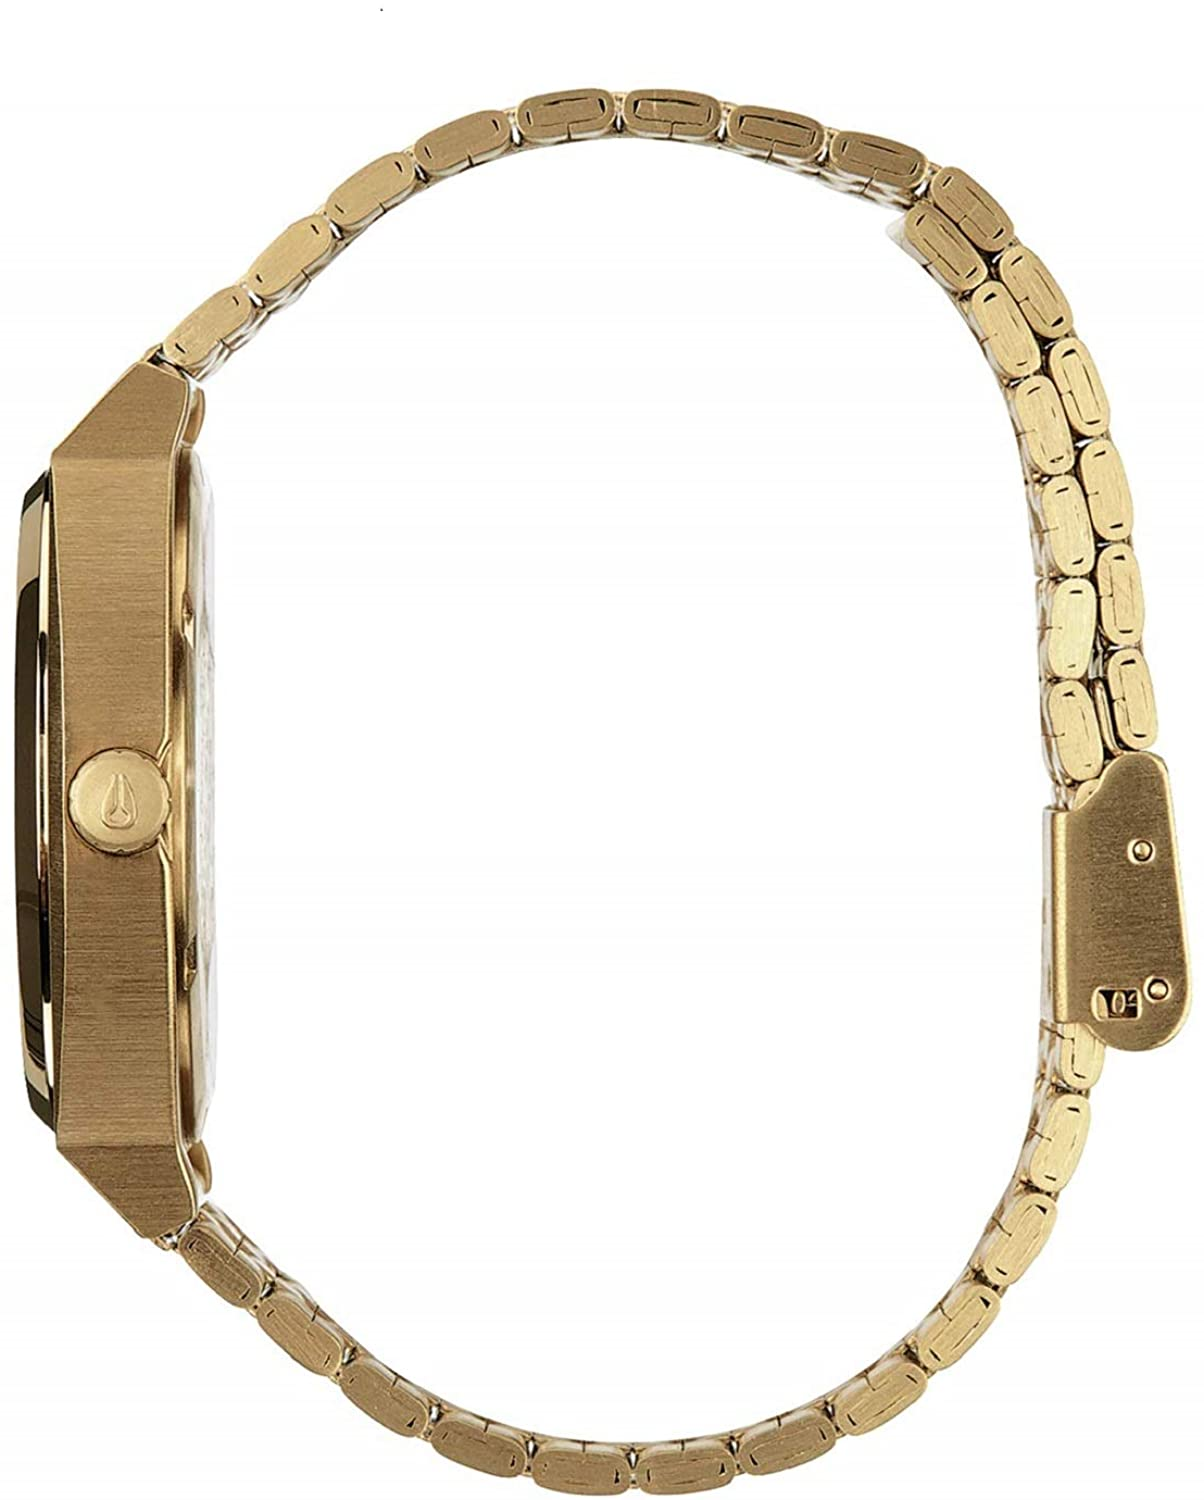 NIXON Time Teller A045 All Gold / Black Sunray